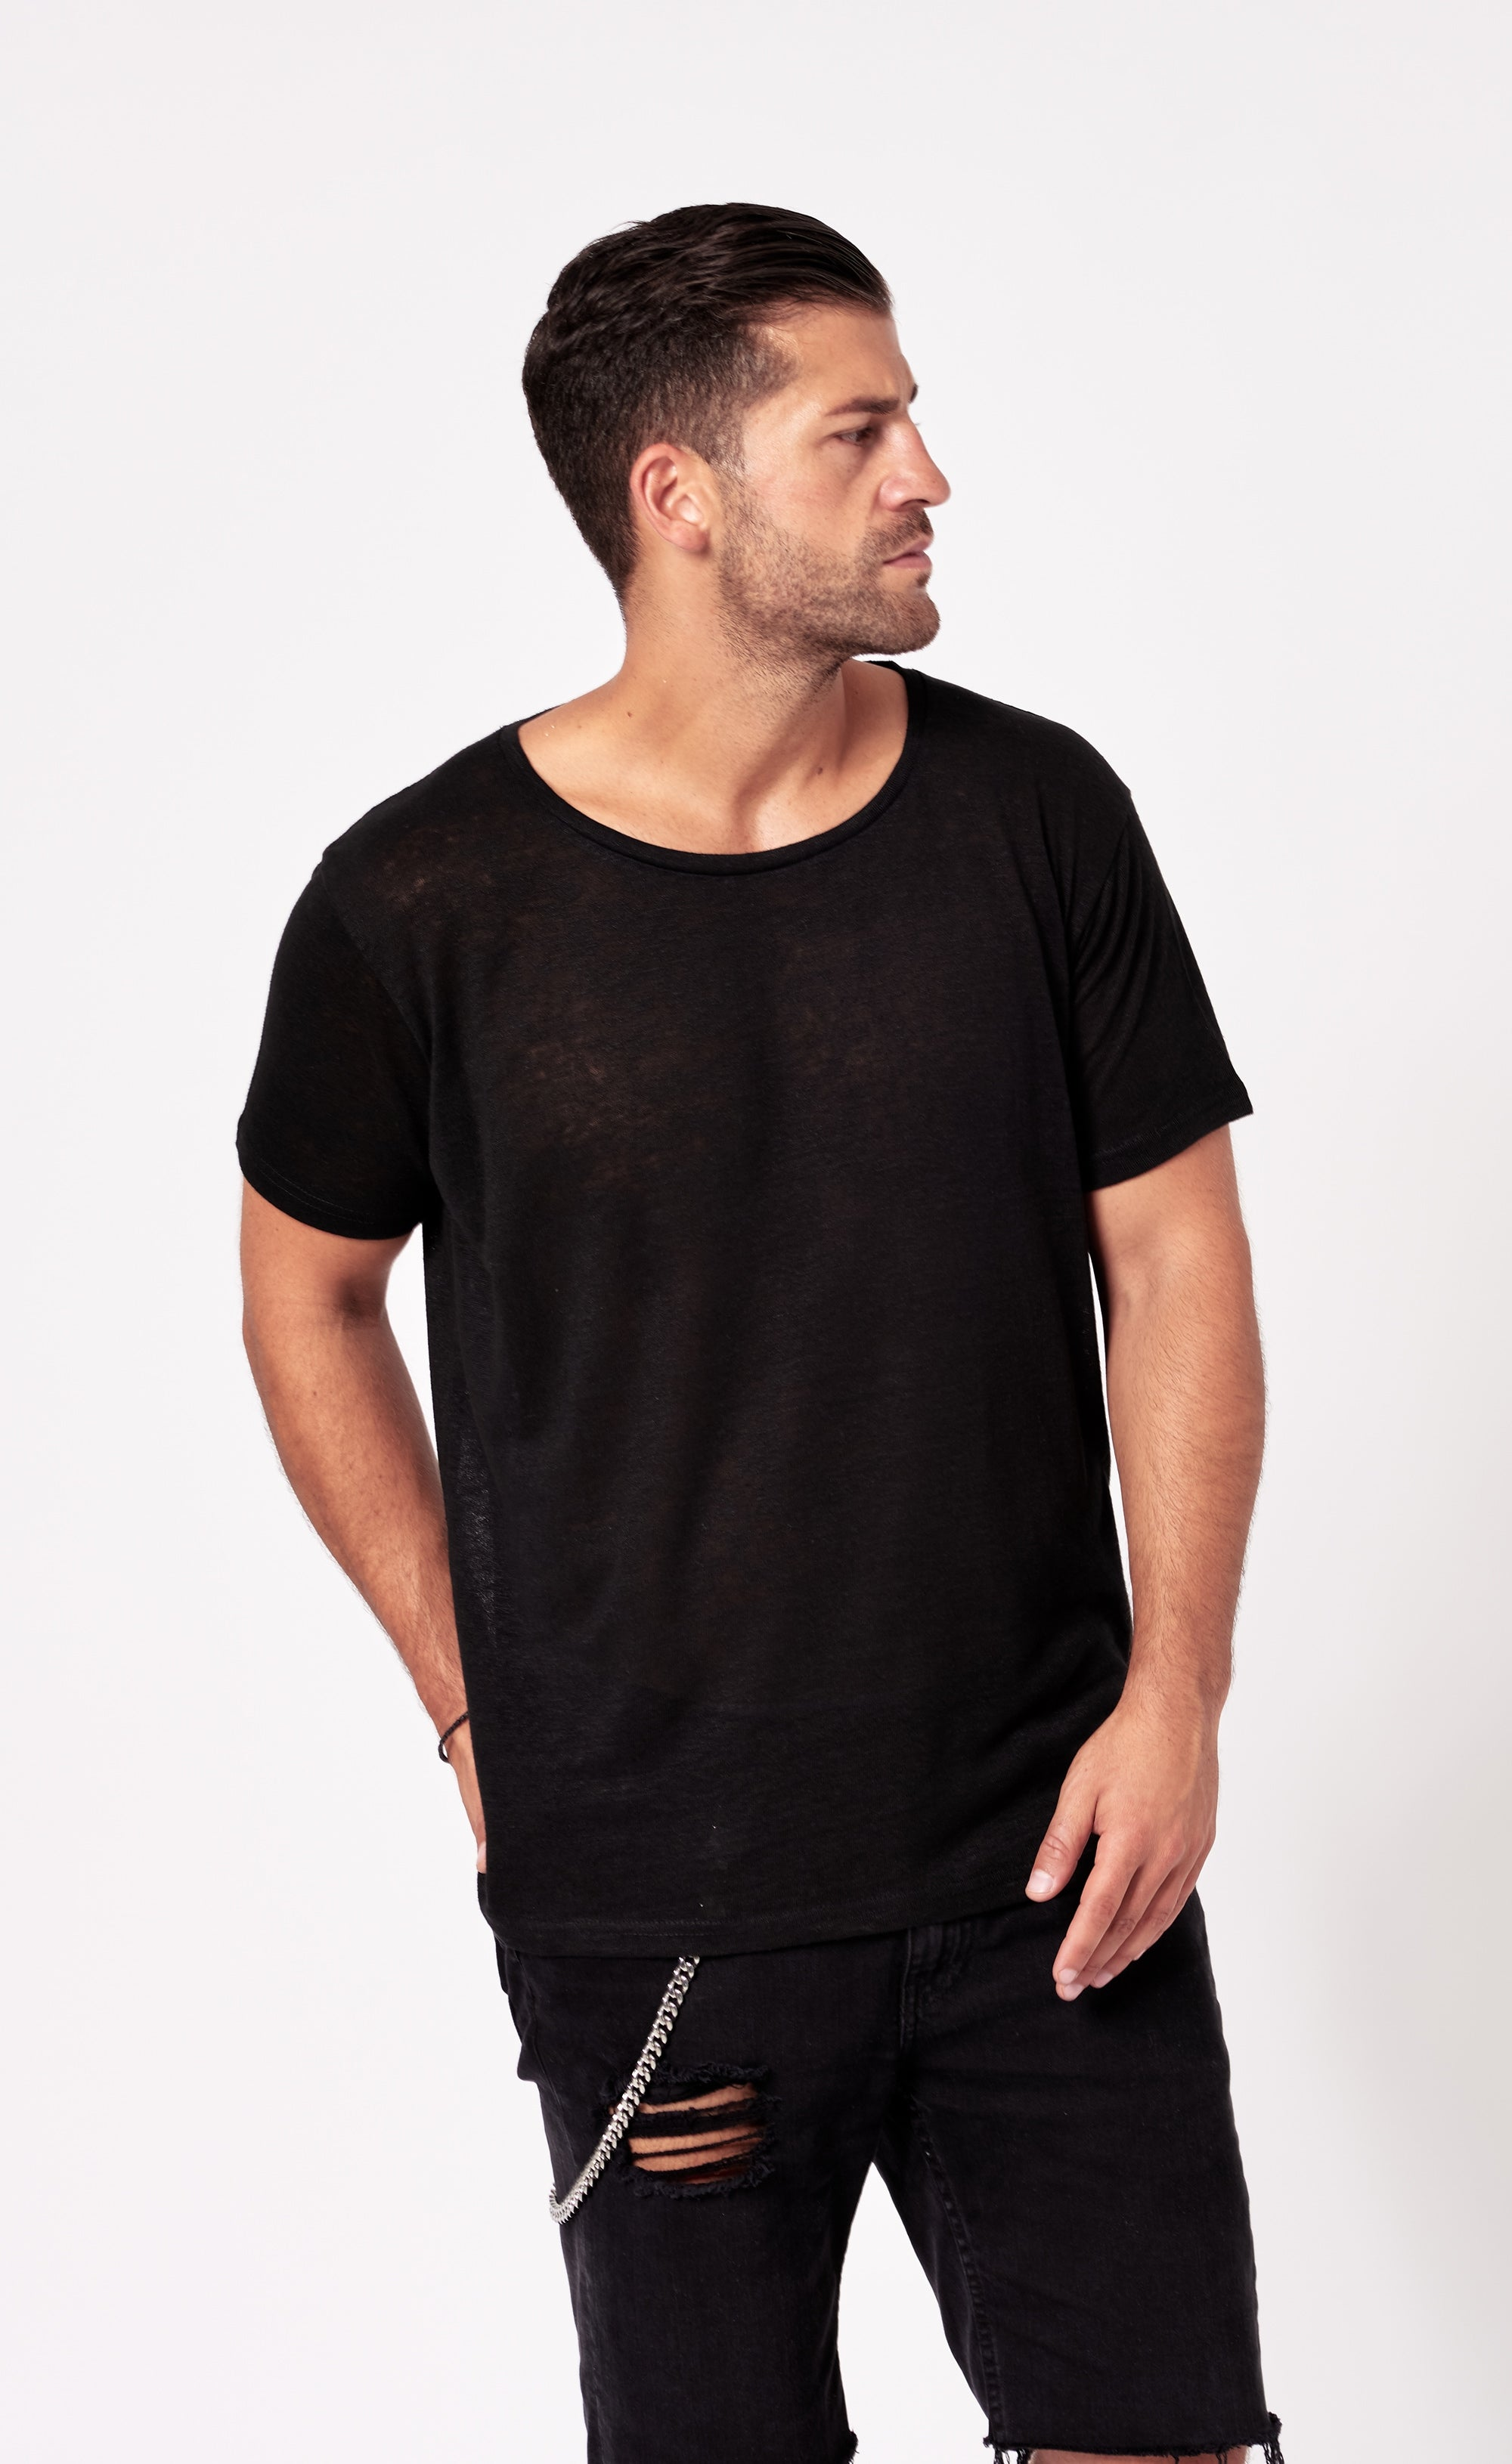 LINEN T-SHIRT - BLACK - Forage-Clothing